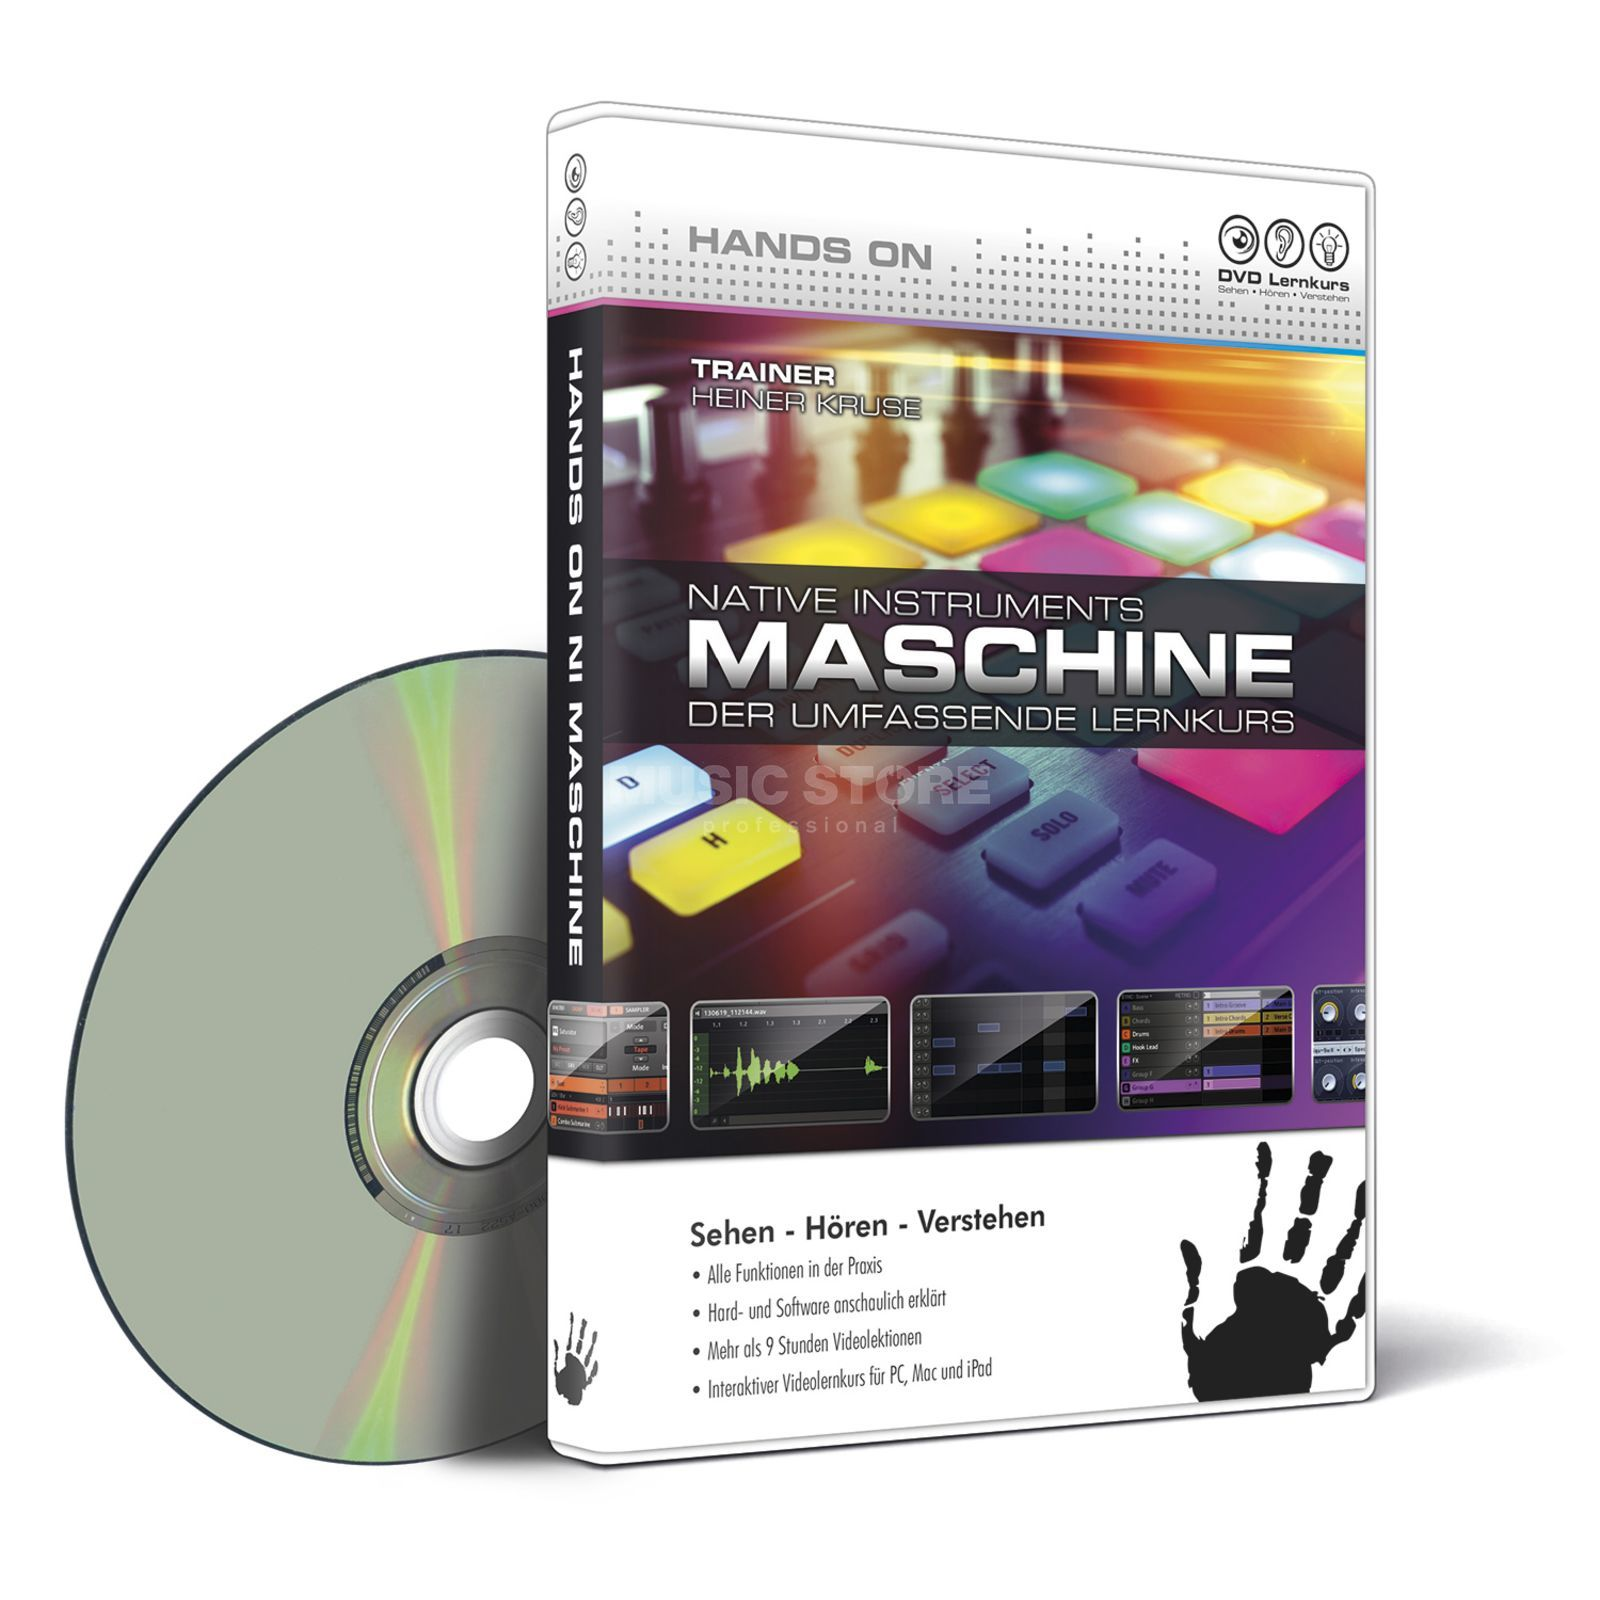 DVD Lernkurs Hands On NI Maschine DVD Lernkurs Produktbild